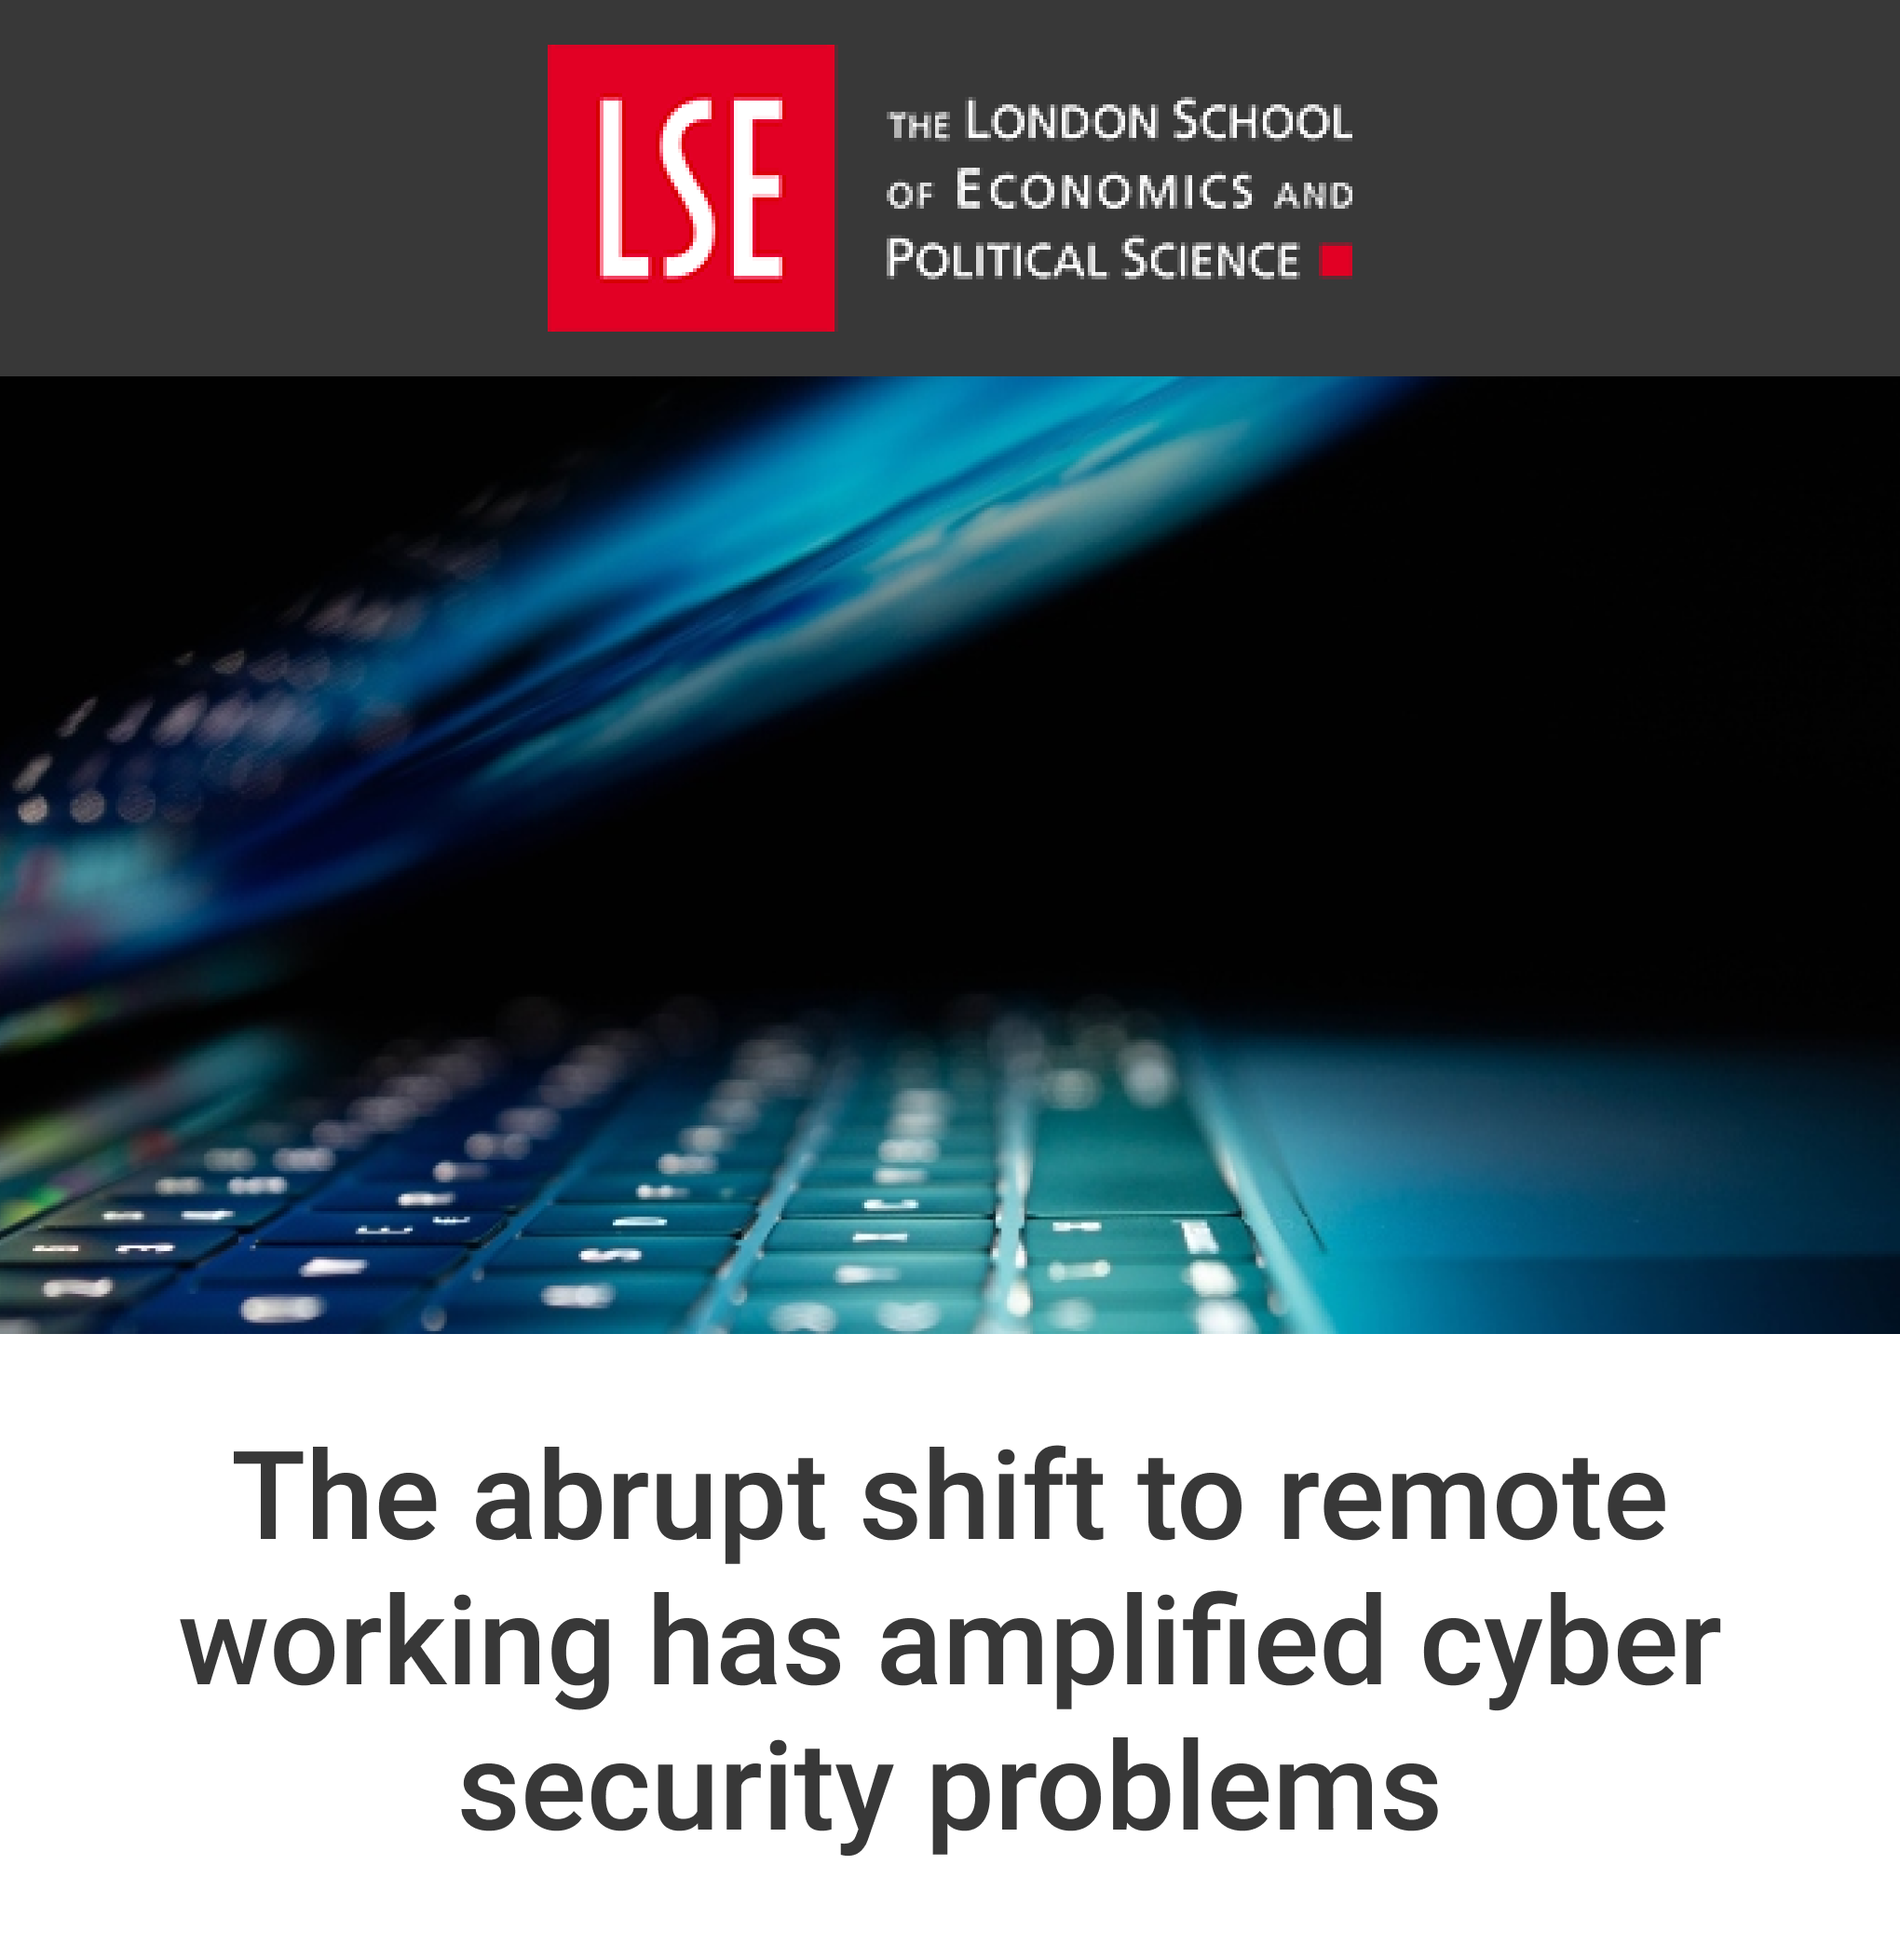 The Abrupt Shift to Remote Working has Amplified Cyber Security Problems